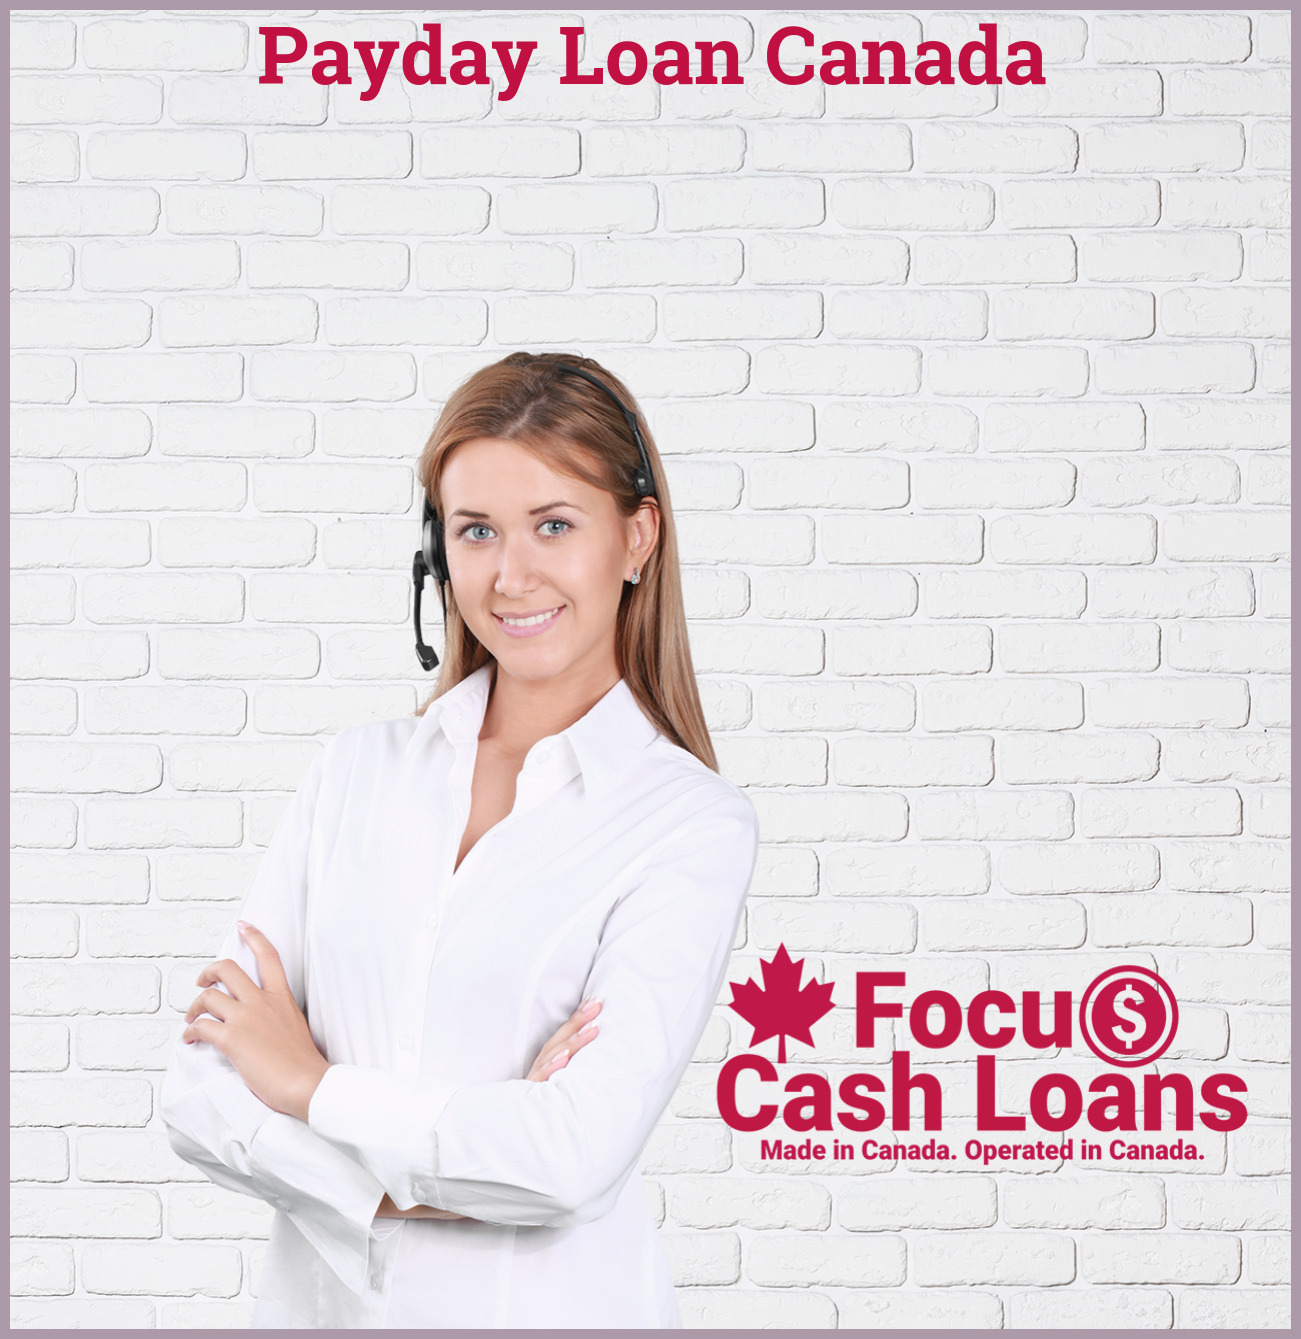 Picture of family that got Online Payday Loans in Canada